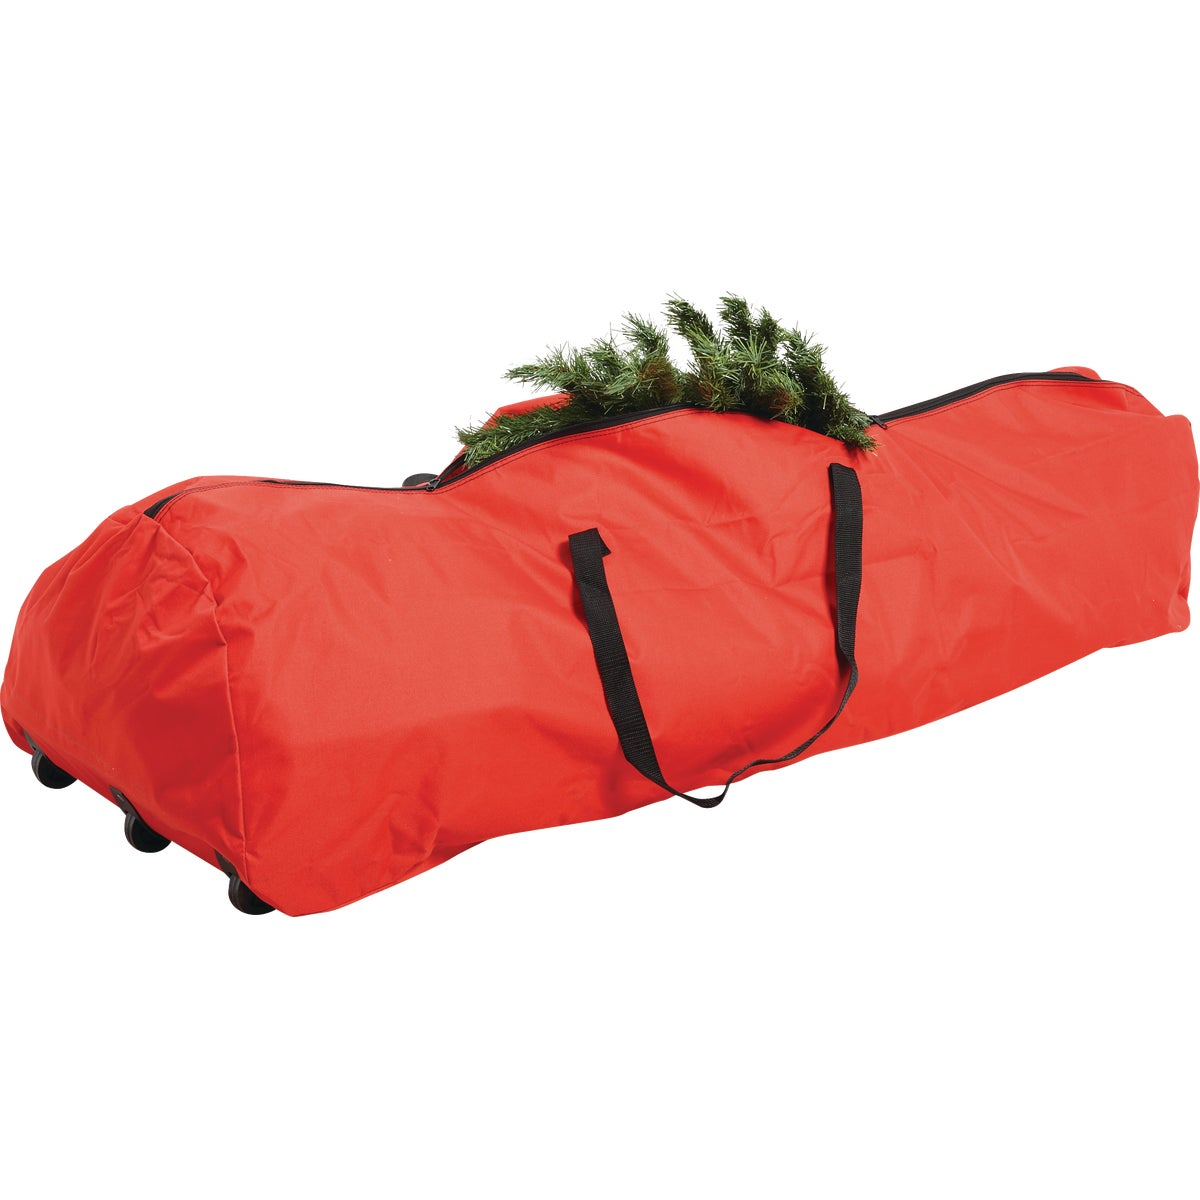 7.5' ROLLING TREE BAG - 11575-106 by Dyno Seasonal Sol